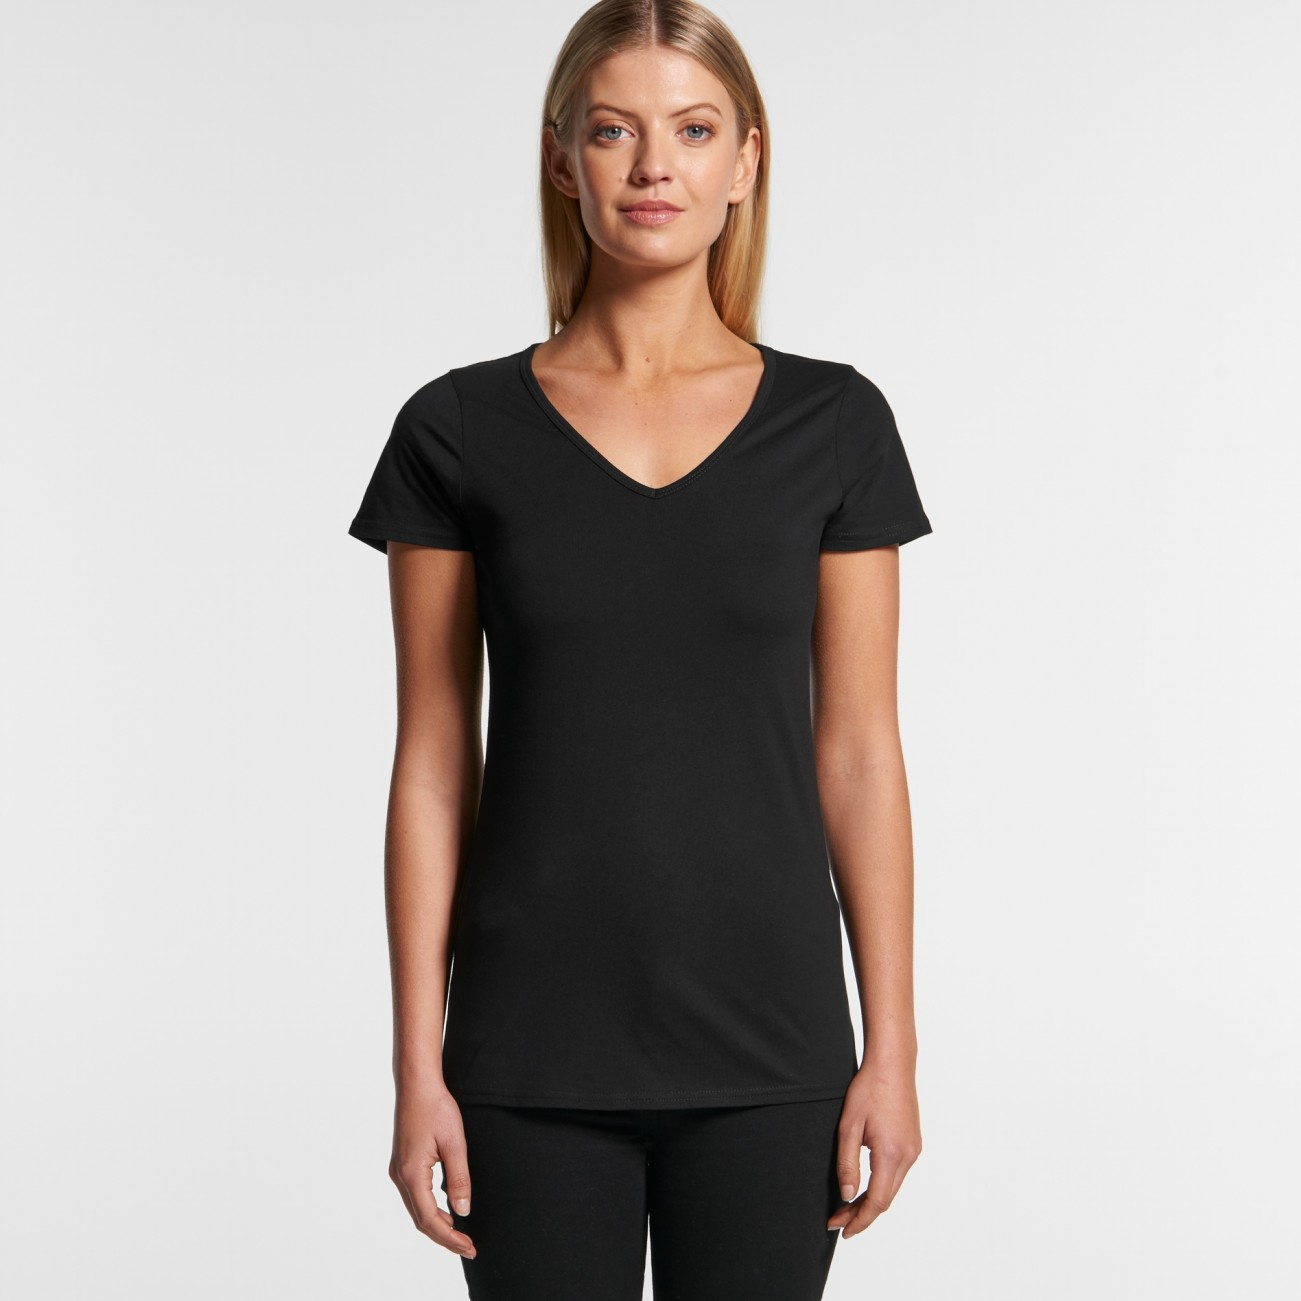 4010 WOMENS BEVEL V-NECK TEE